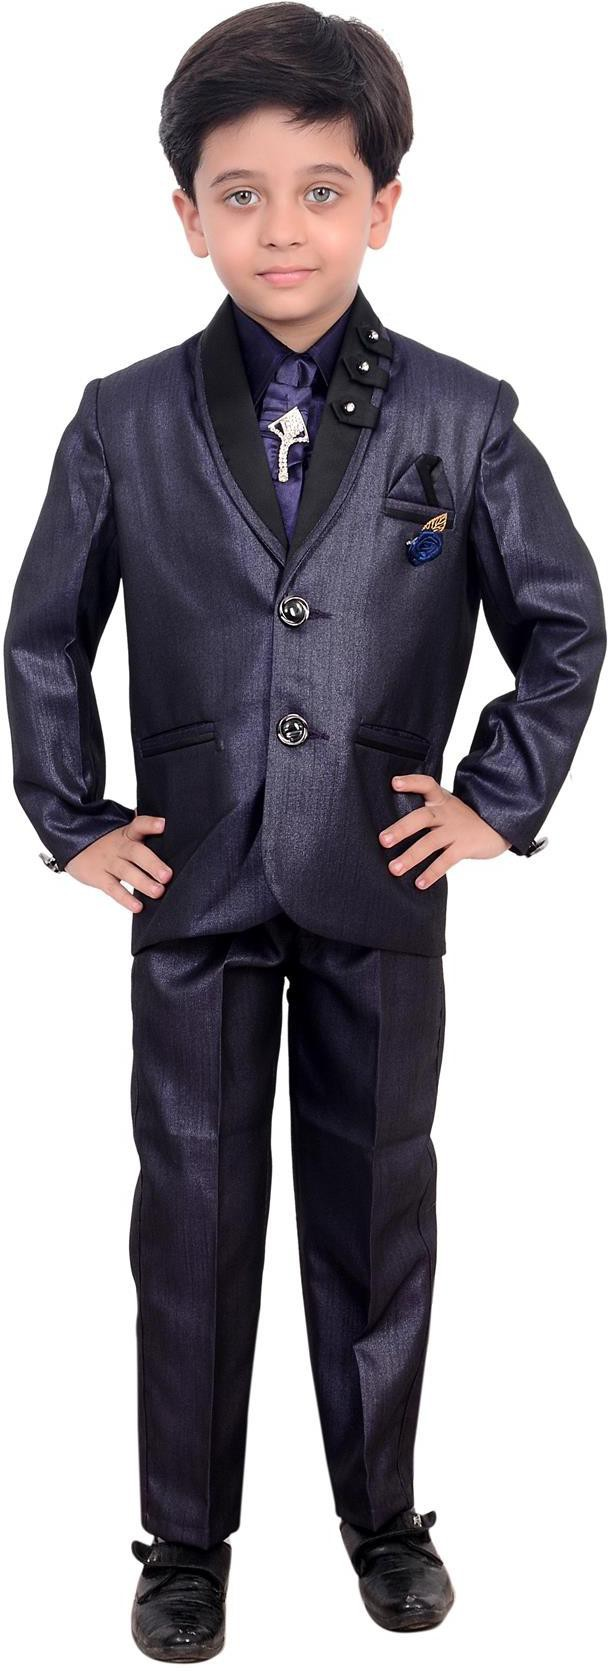 Arshia Fashions Two Buttoned Solid Boys Suit